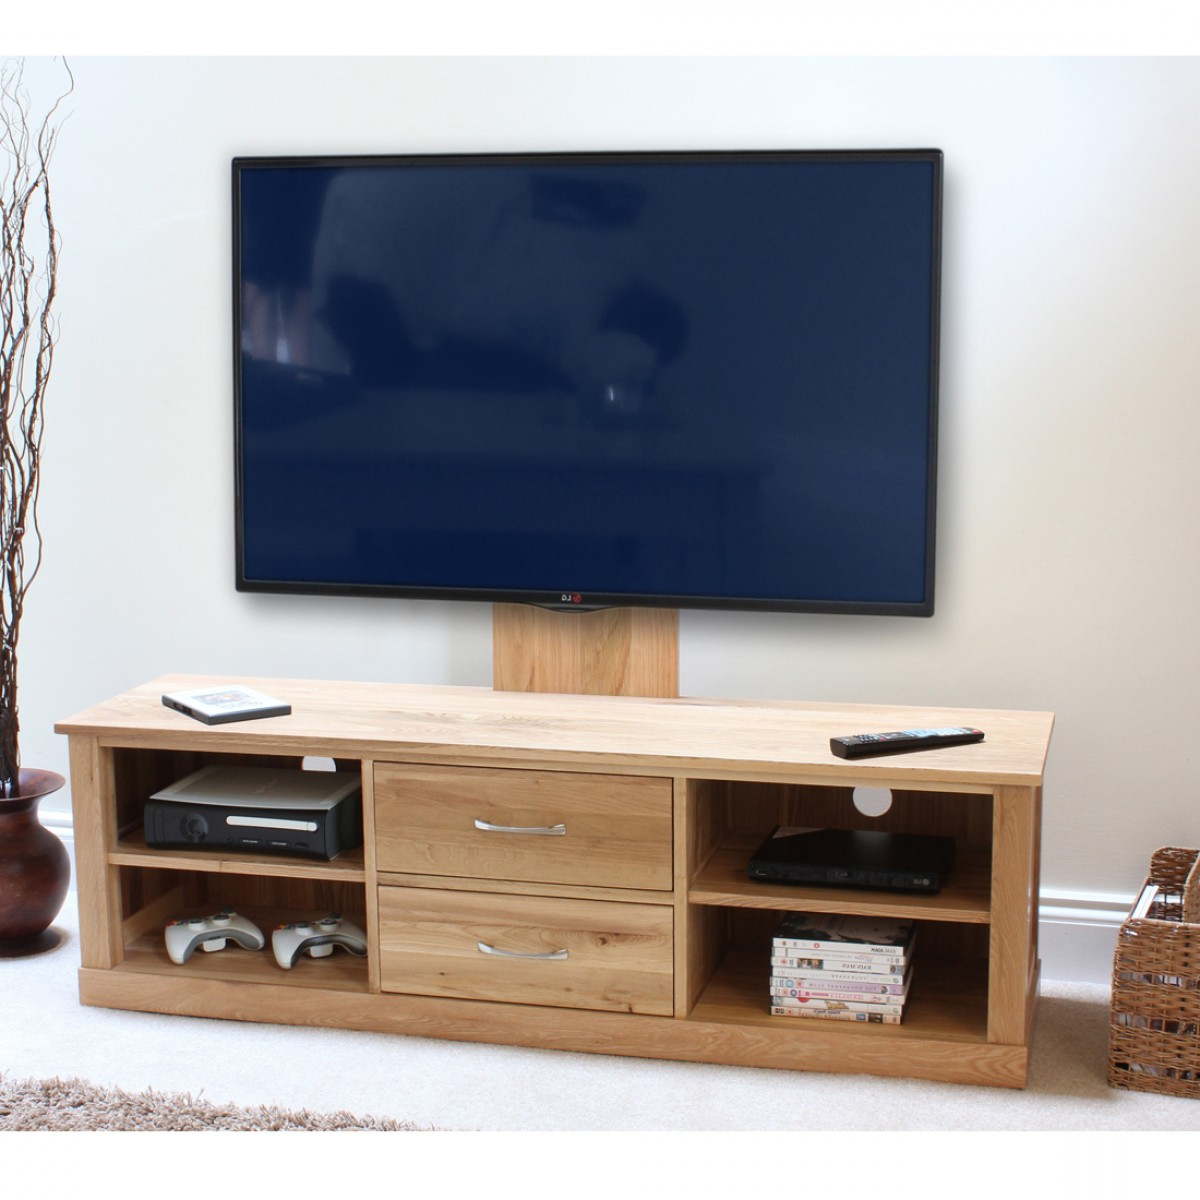 Baumhaus Mobel Oak Widescreen Tv Cabinet & Mounted Adjustable With Preferred Oak Widescreen Tv Units (View 2 of 20)